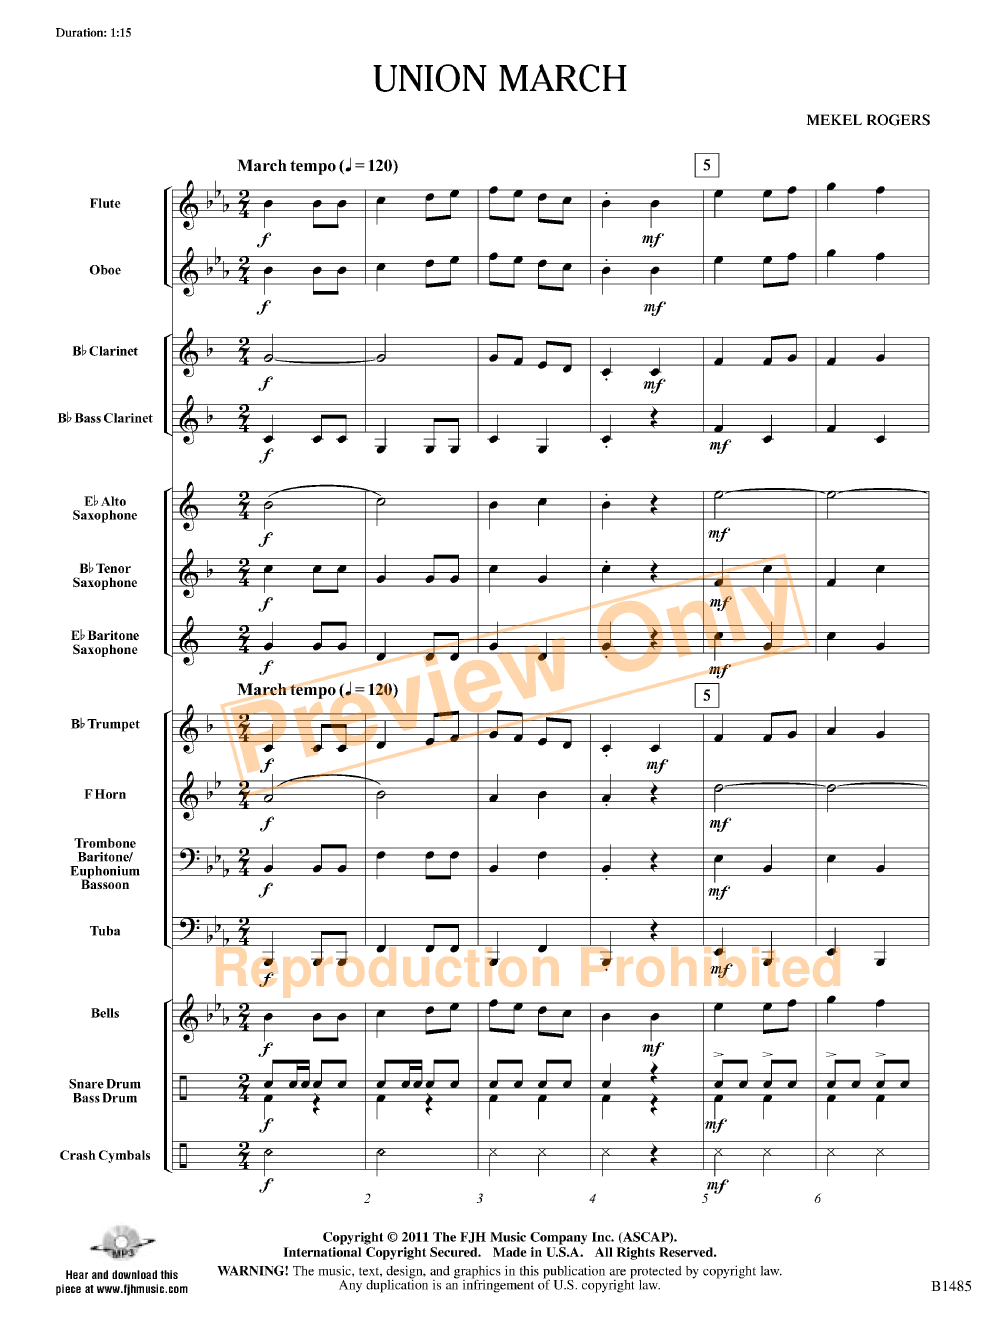 Union March By Mekel Rogers Drum And Bass Bass Clarinet Sheet Music